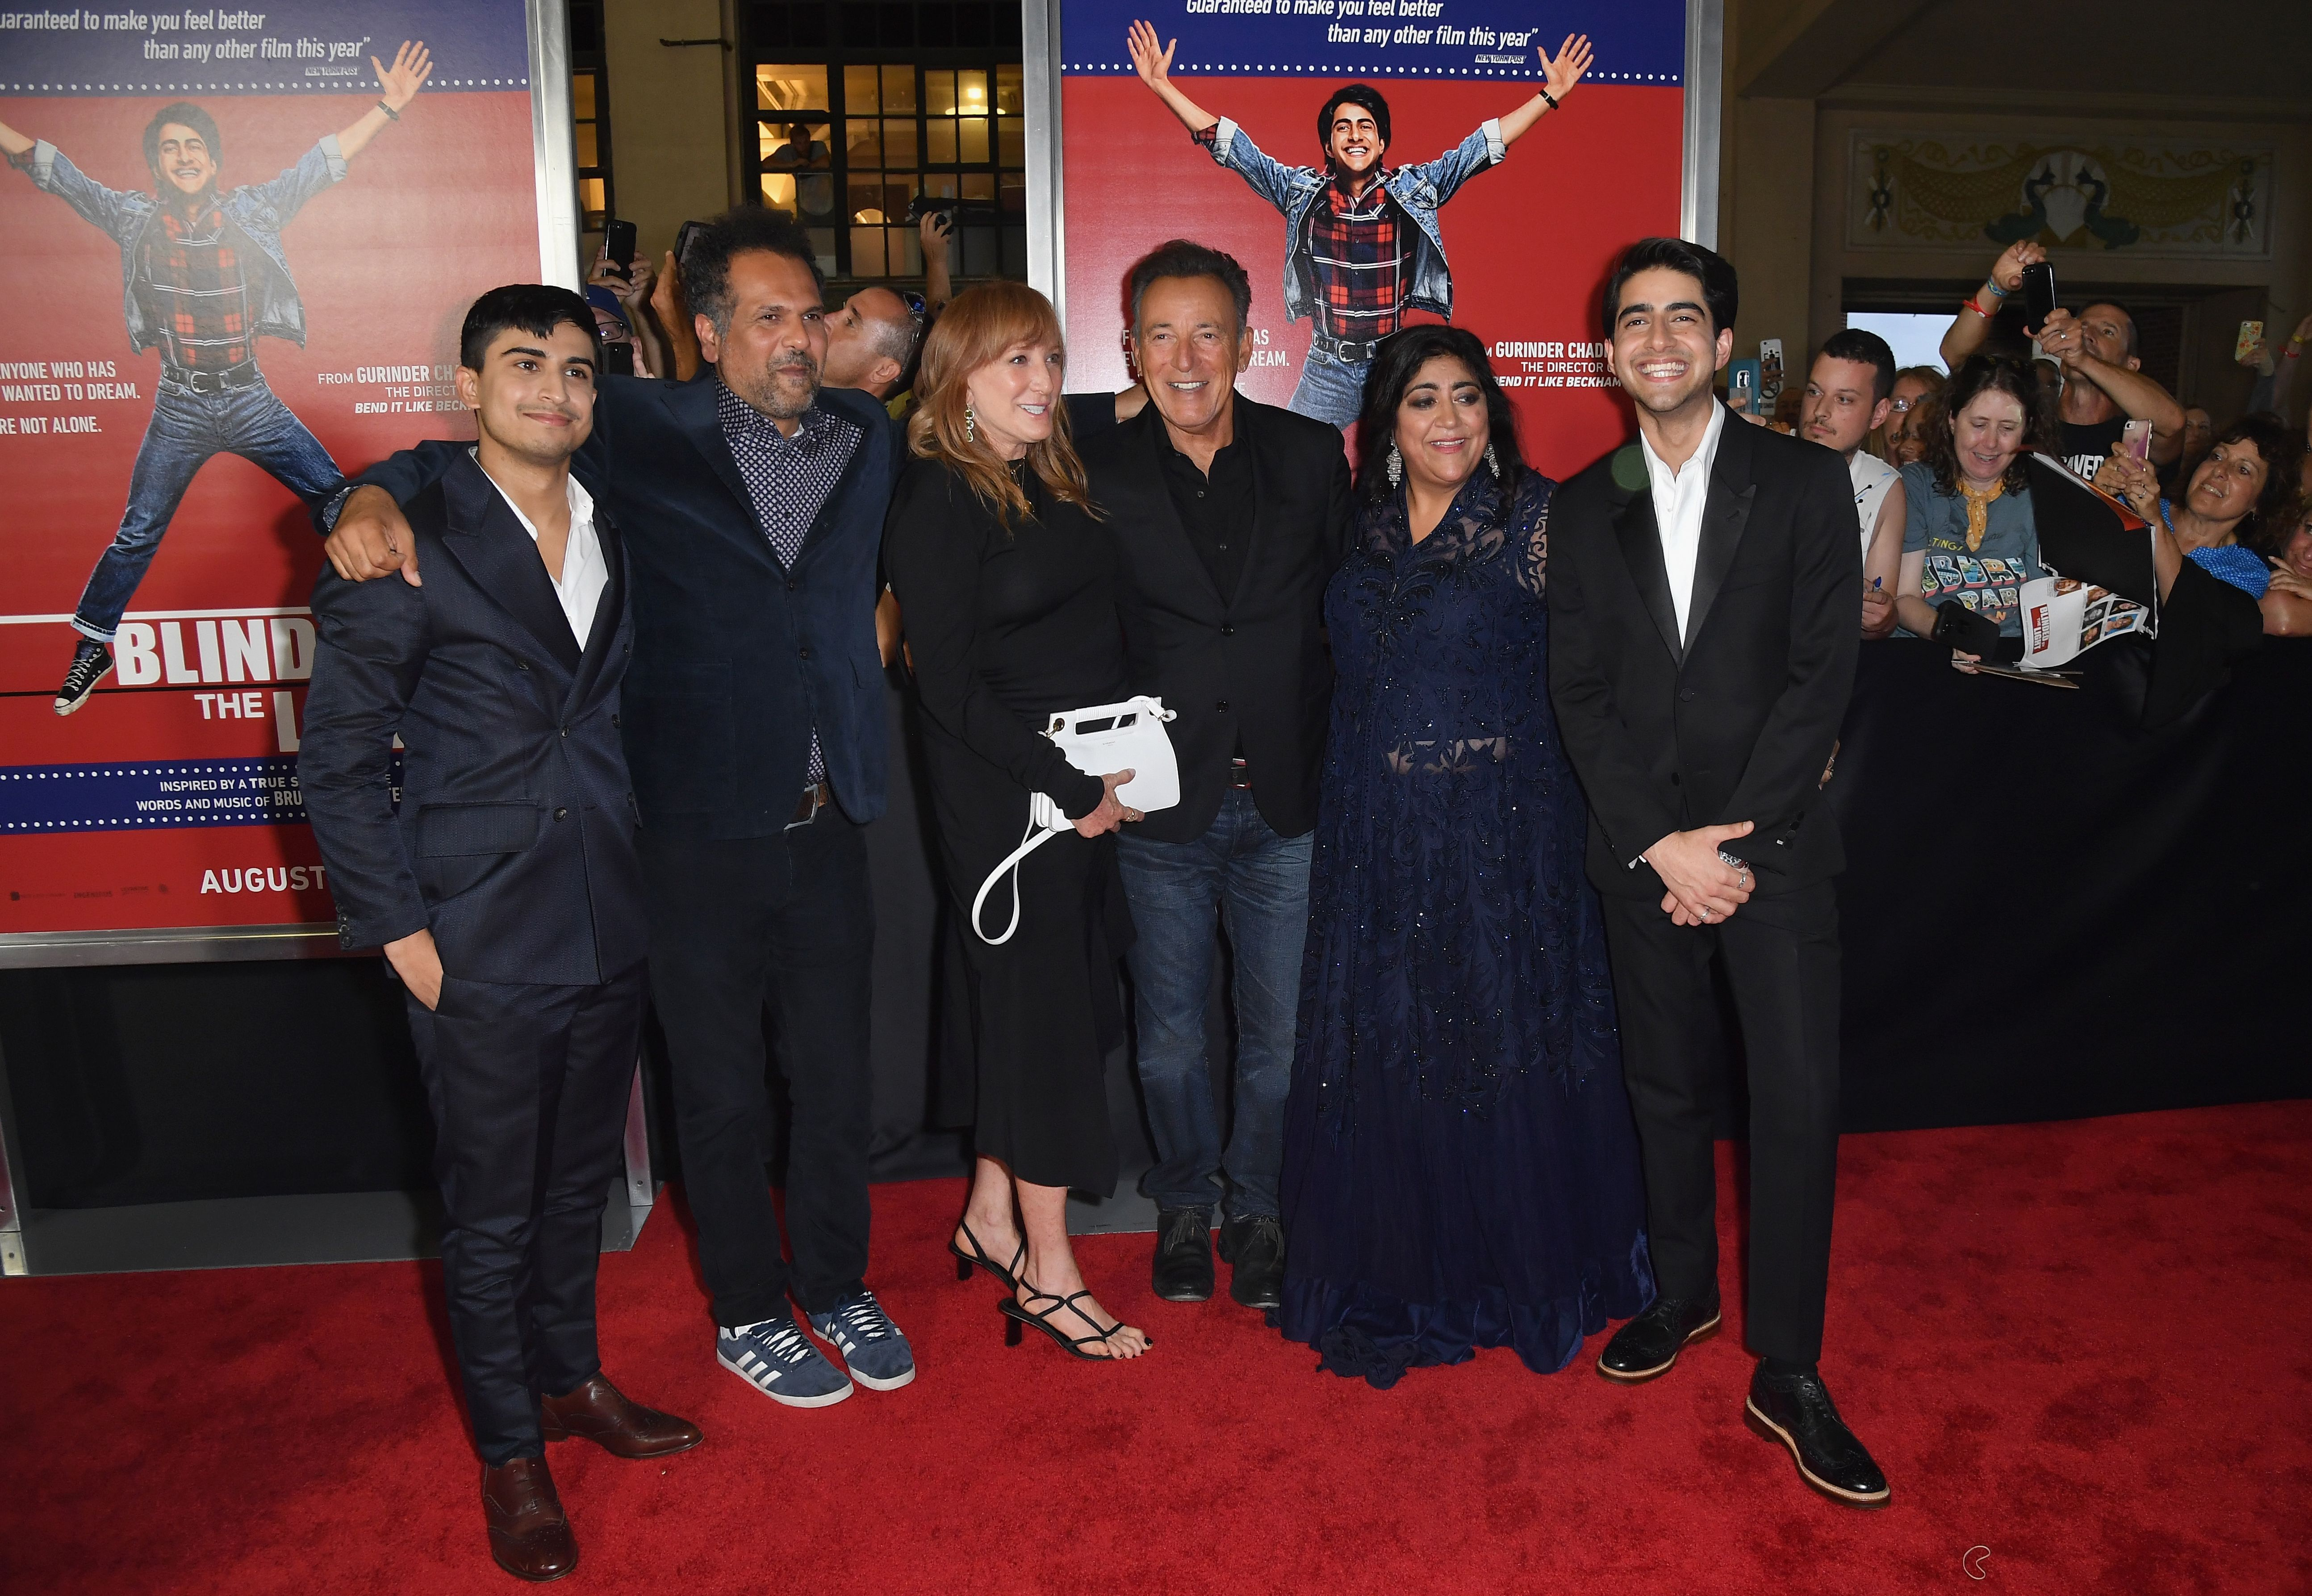 Blinded By The Light Springsteen Superfan On Why The Film